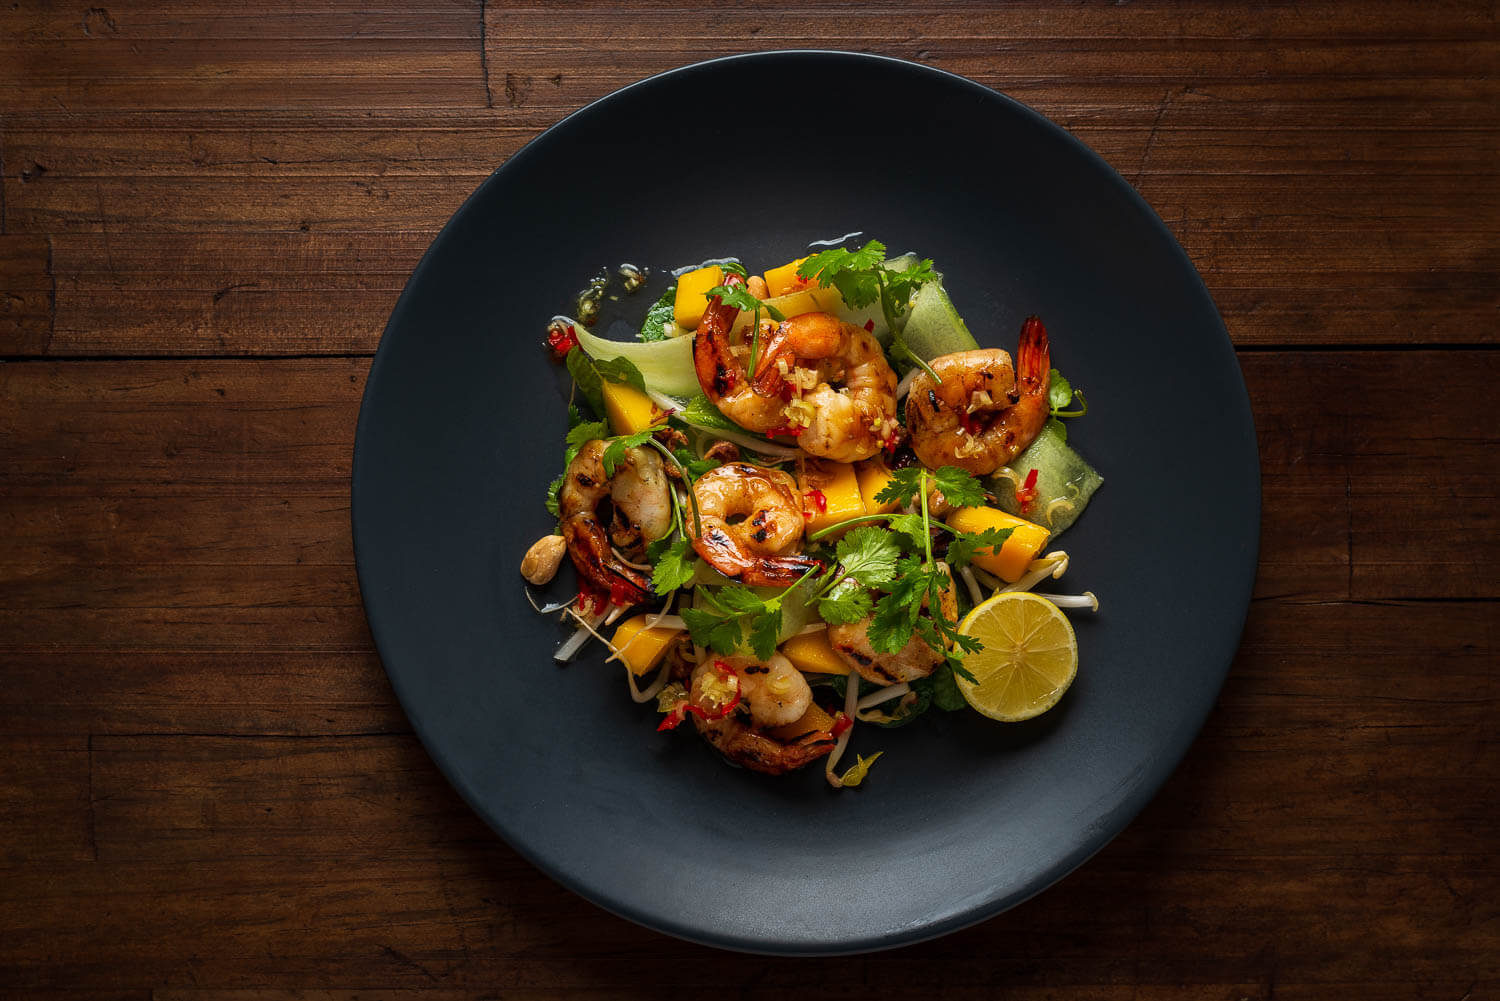 Food Photography using Pic's Peanut Oil